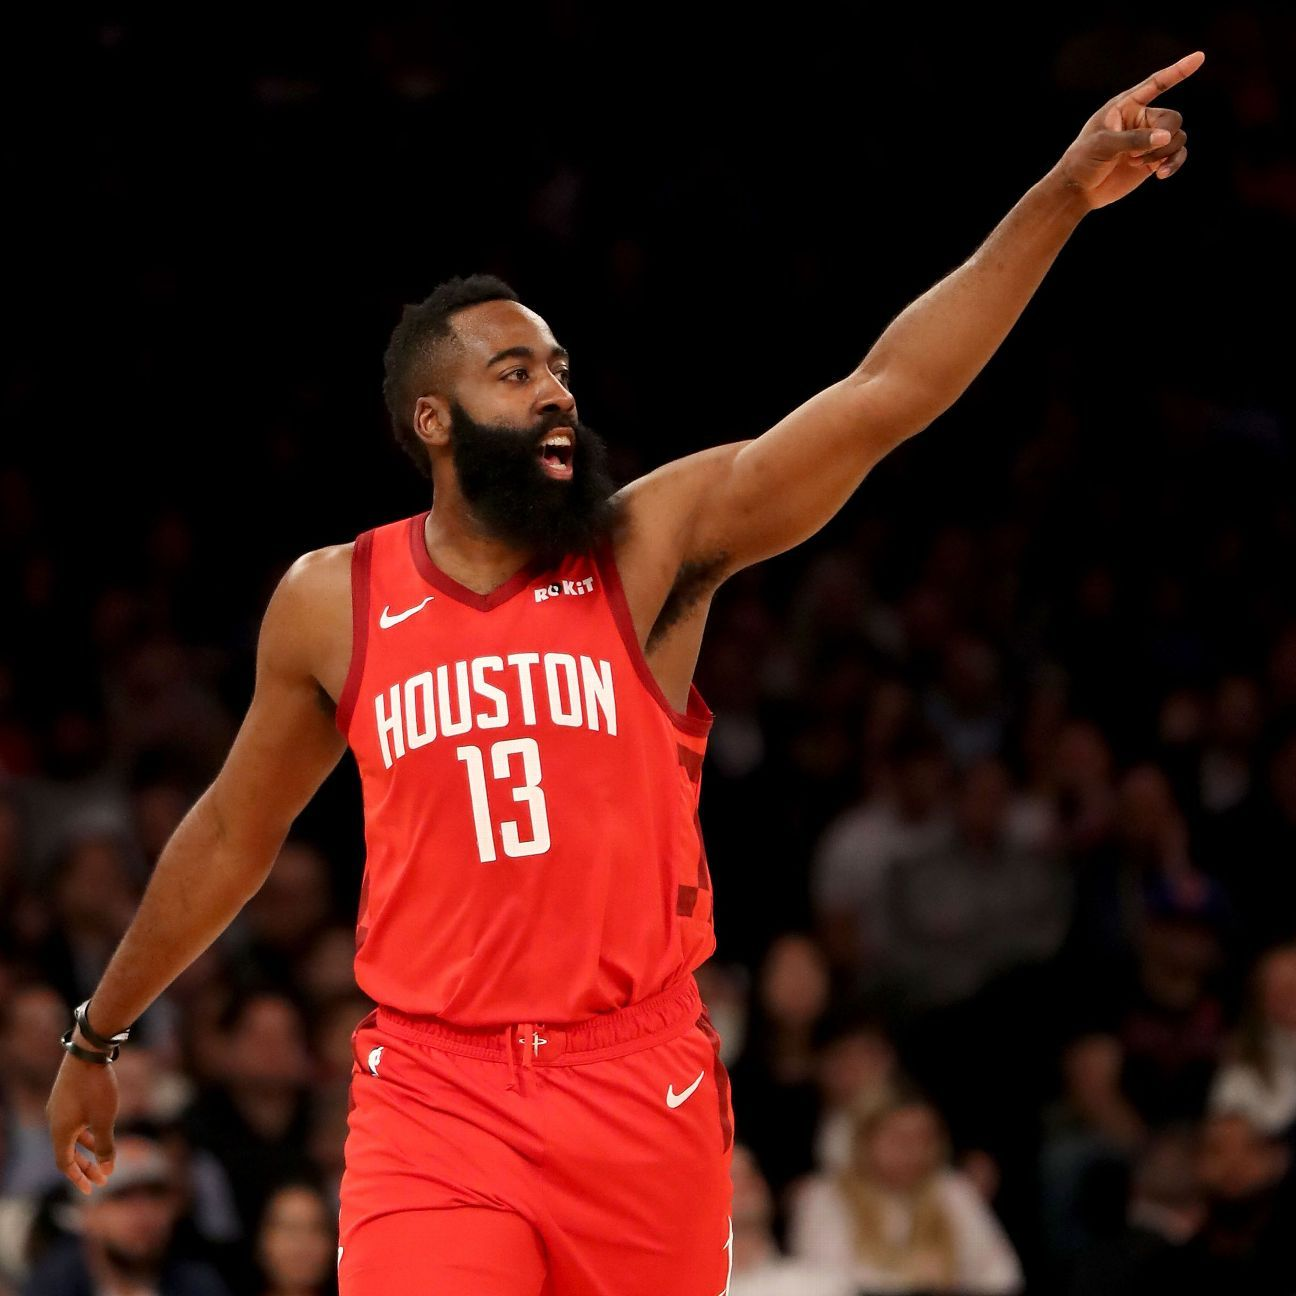 James Harden Free Agency: Houston Rockets' James Harden Hits 30-point Mark In 21